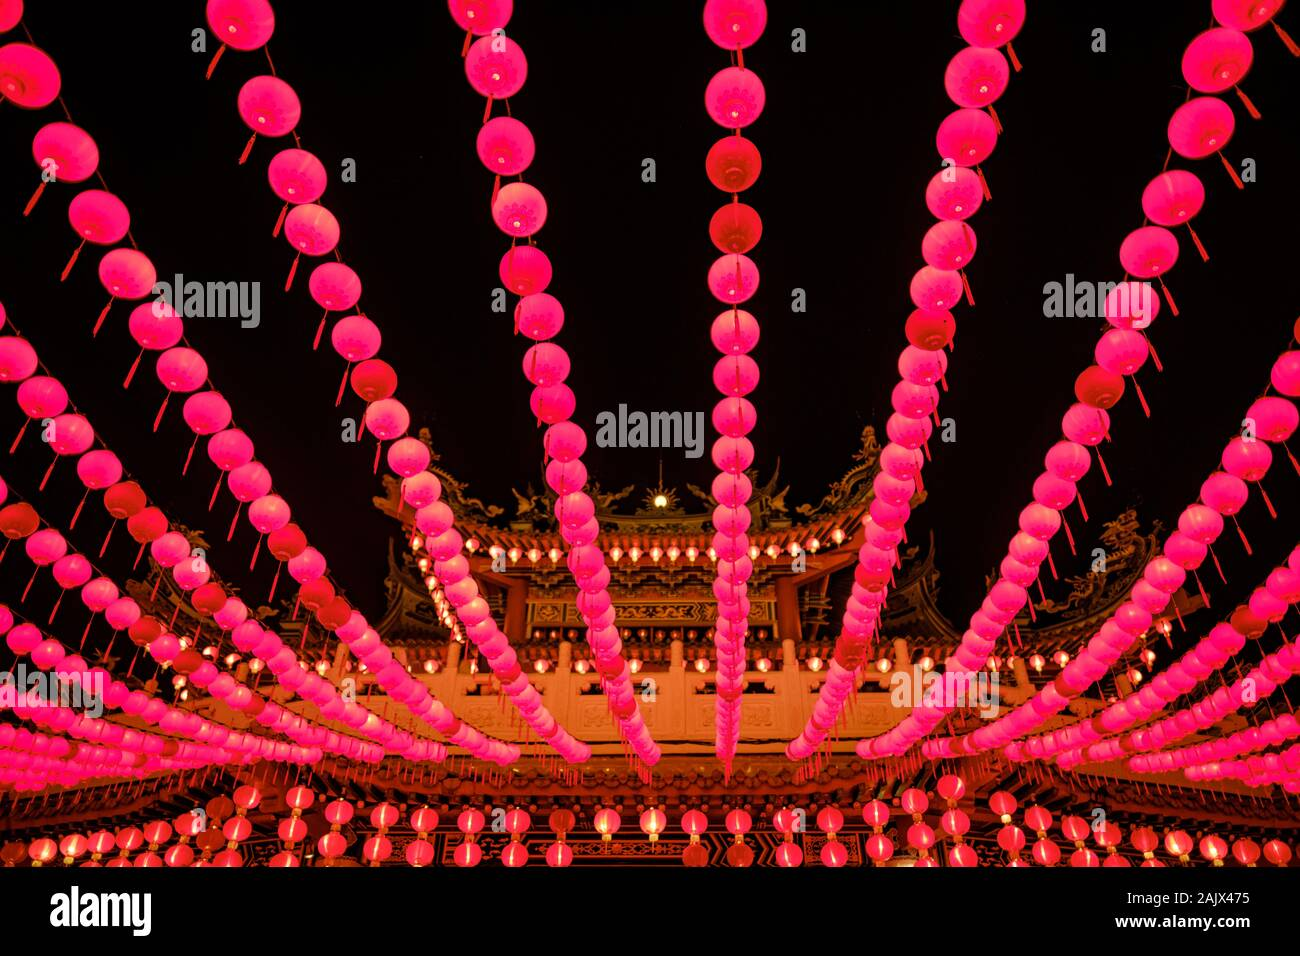 Red lanterns hanging in rows during chinese lunar new year in the night at Thean Hou Temple, Kuala Lumpur, Malaysia Stock Photo